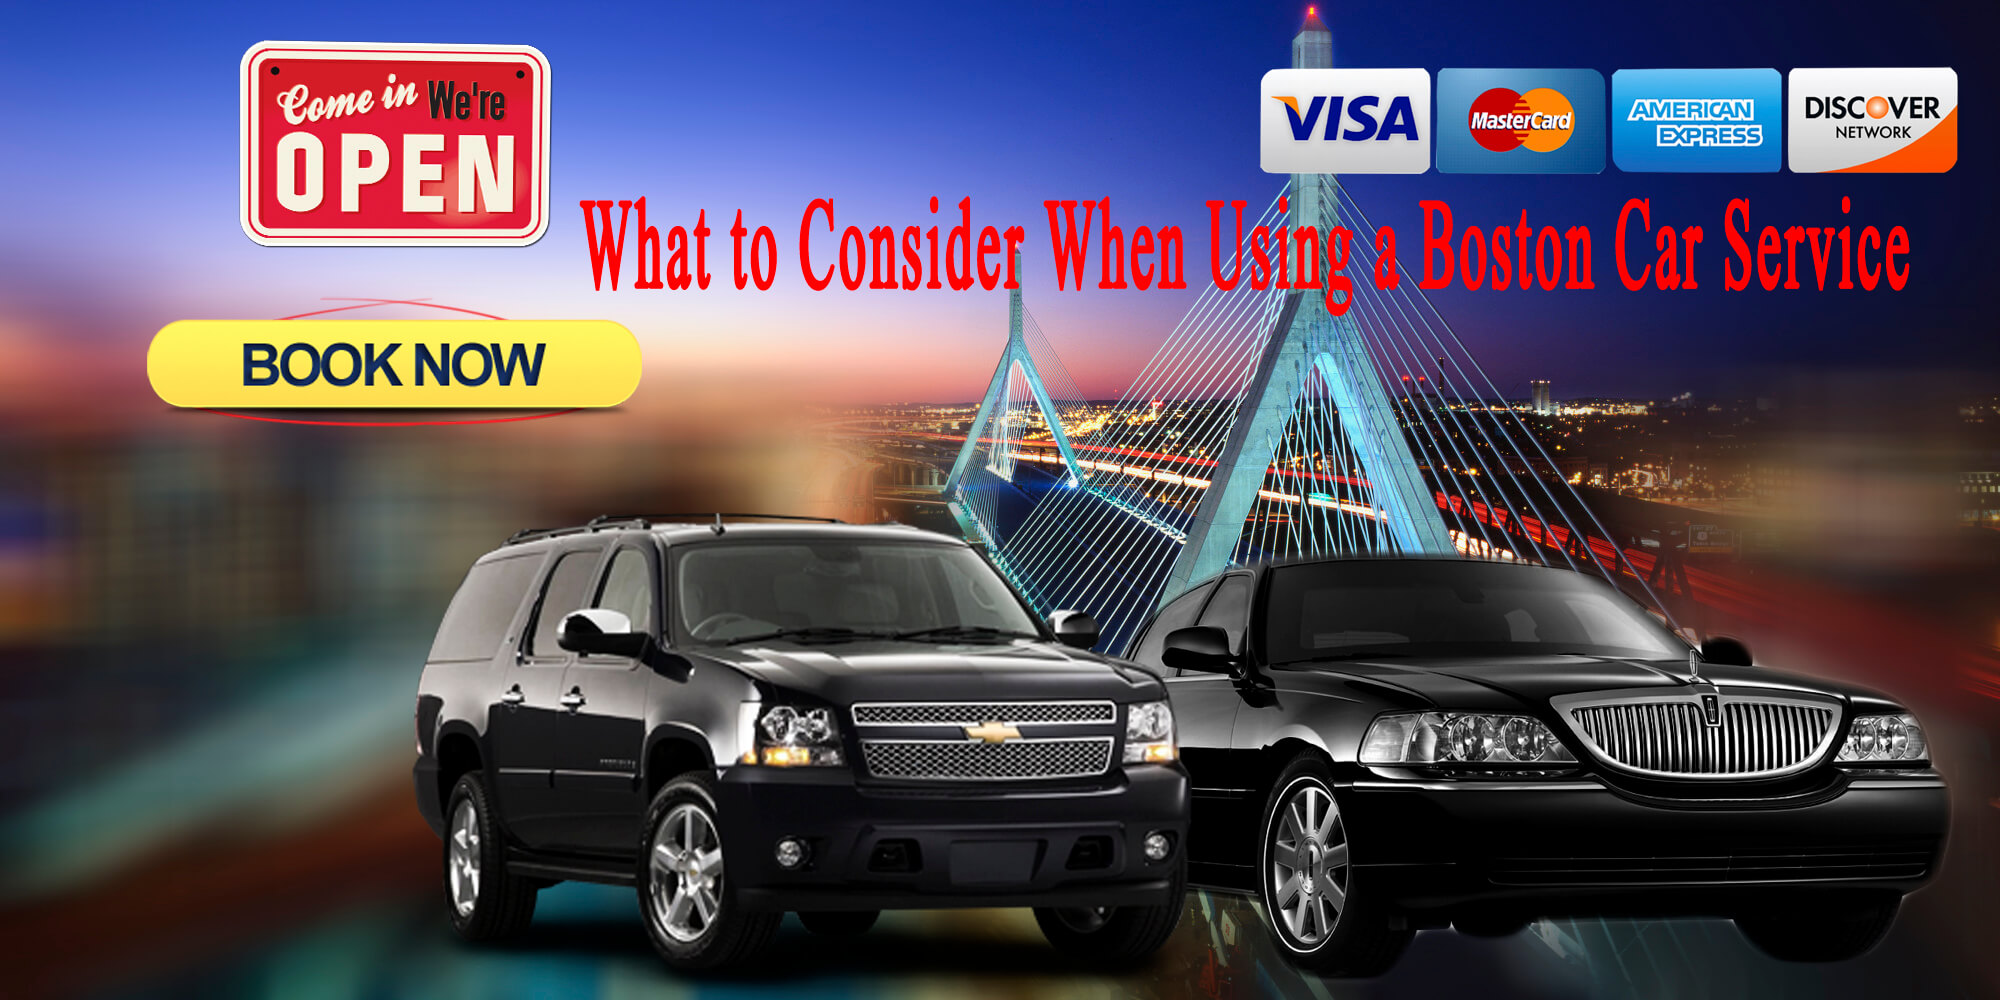 Boston-Car-Service What to Consider When Using a Boston Car Service